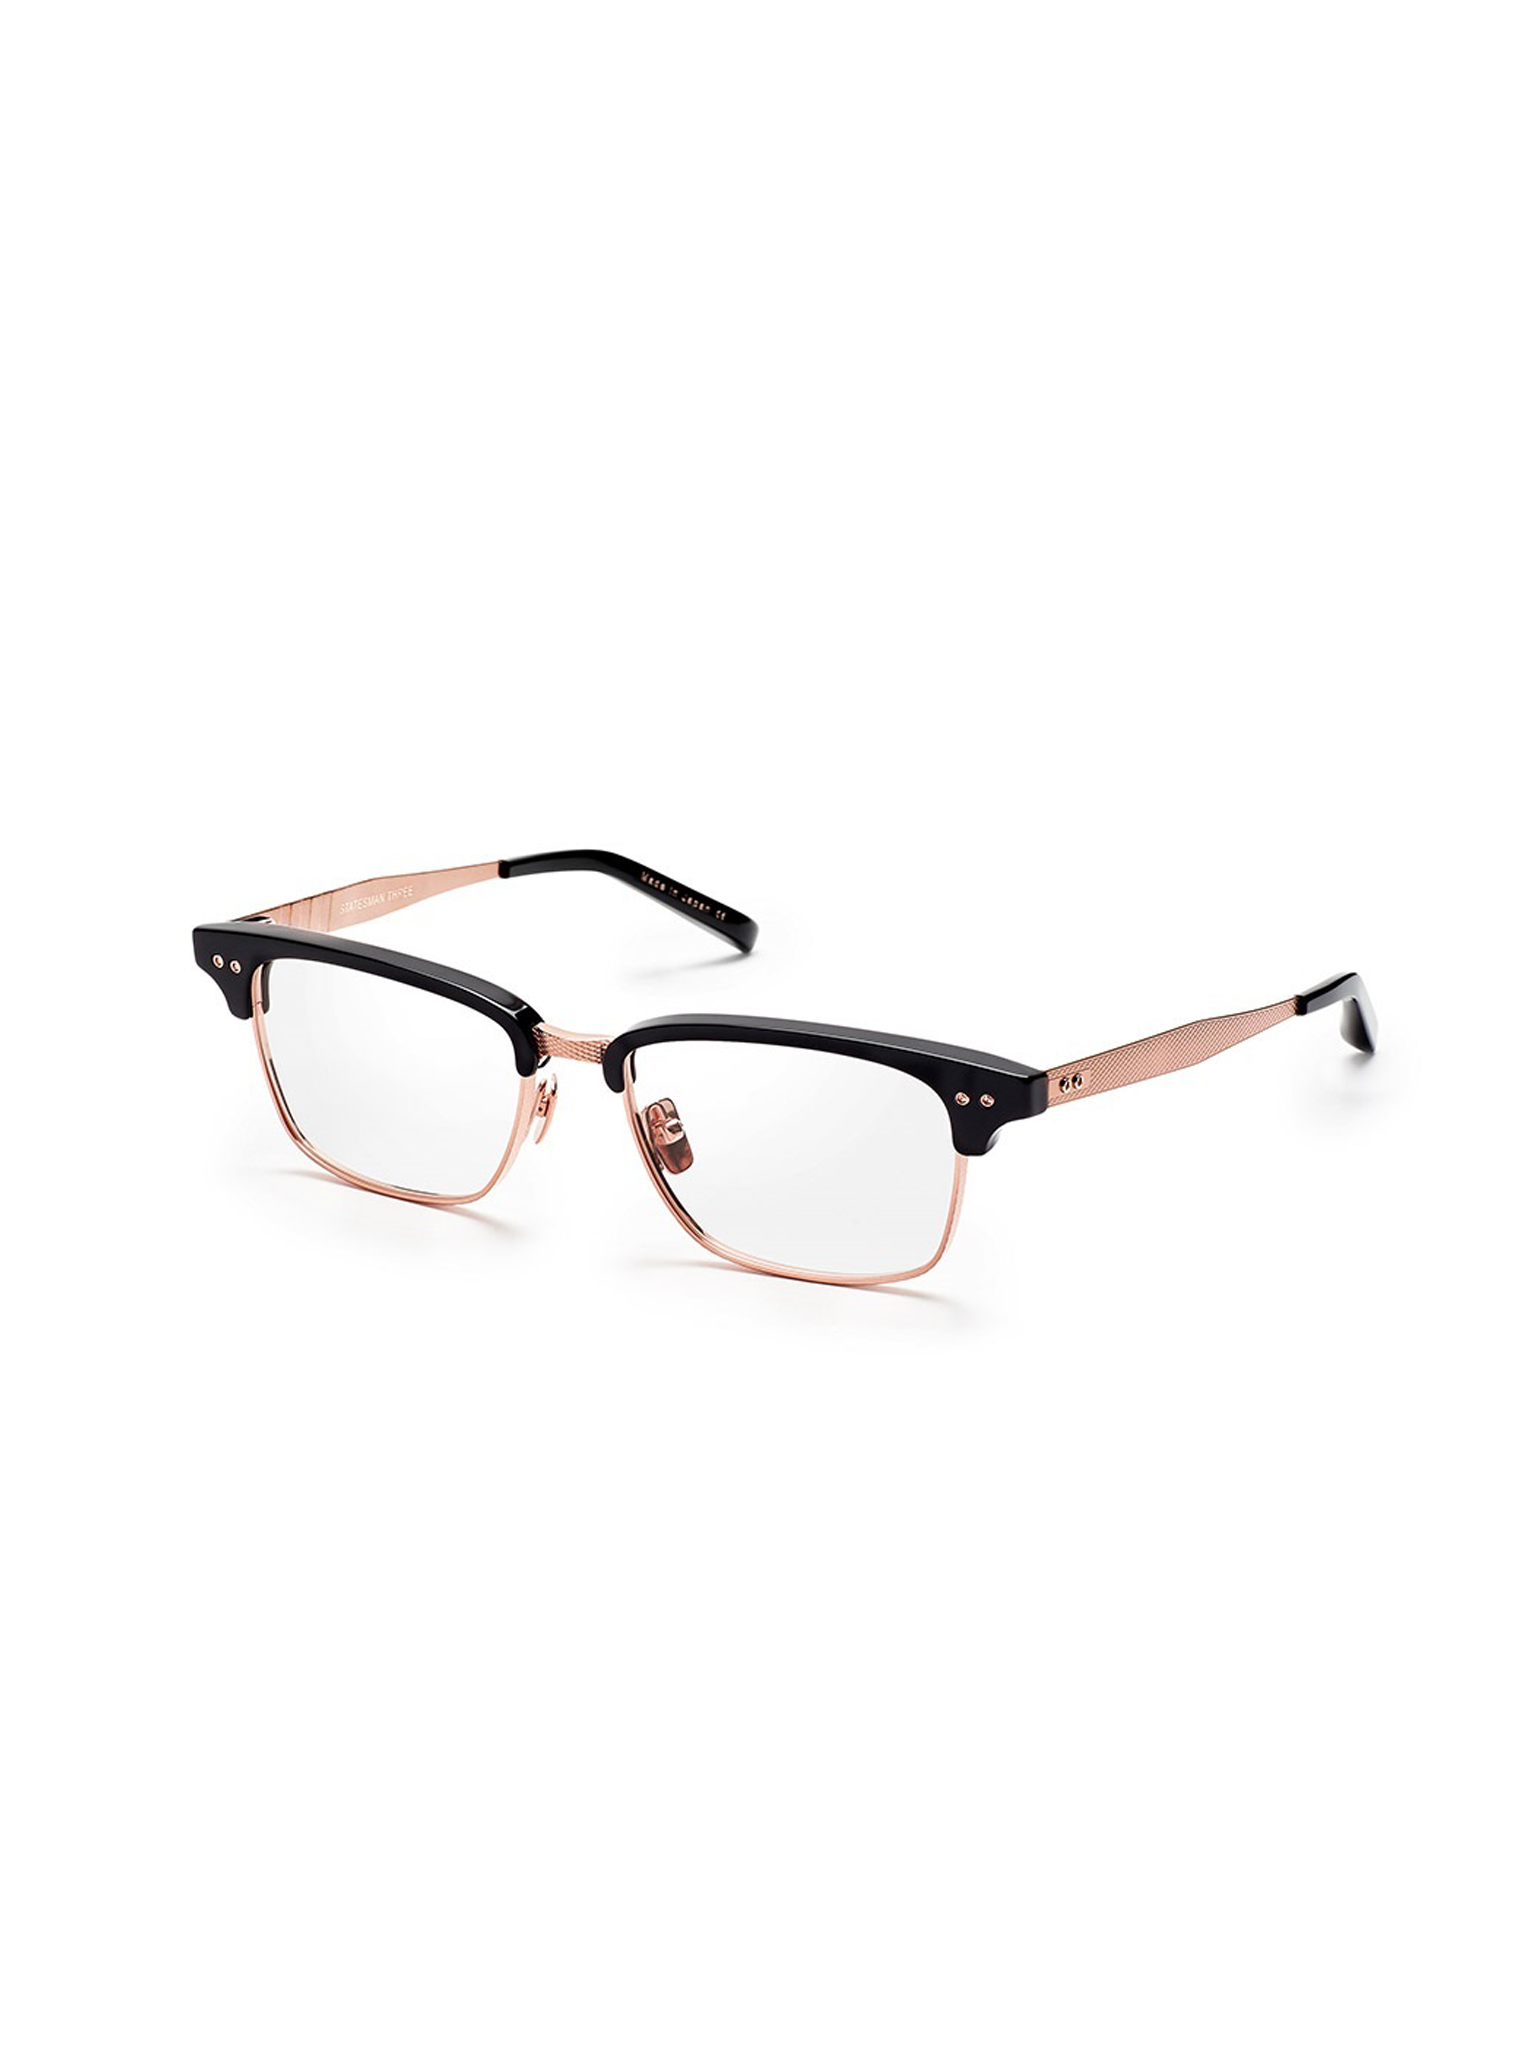 DITA STATESMAN THREE DRX-2011-N- BLK RGLD GLASSES